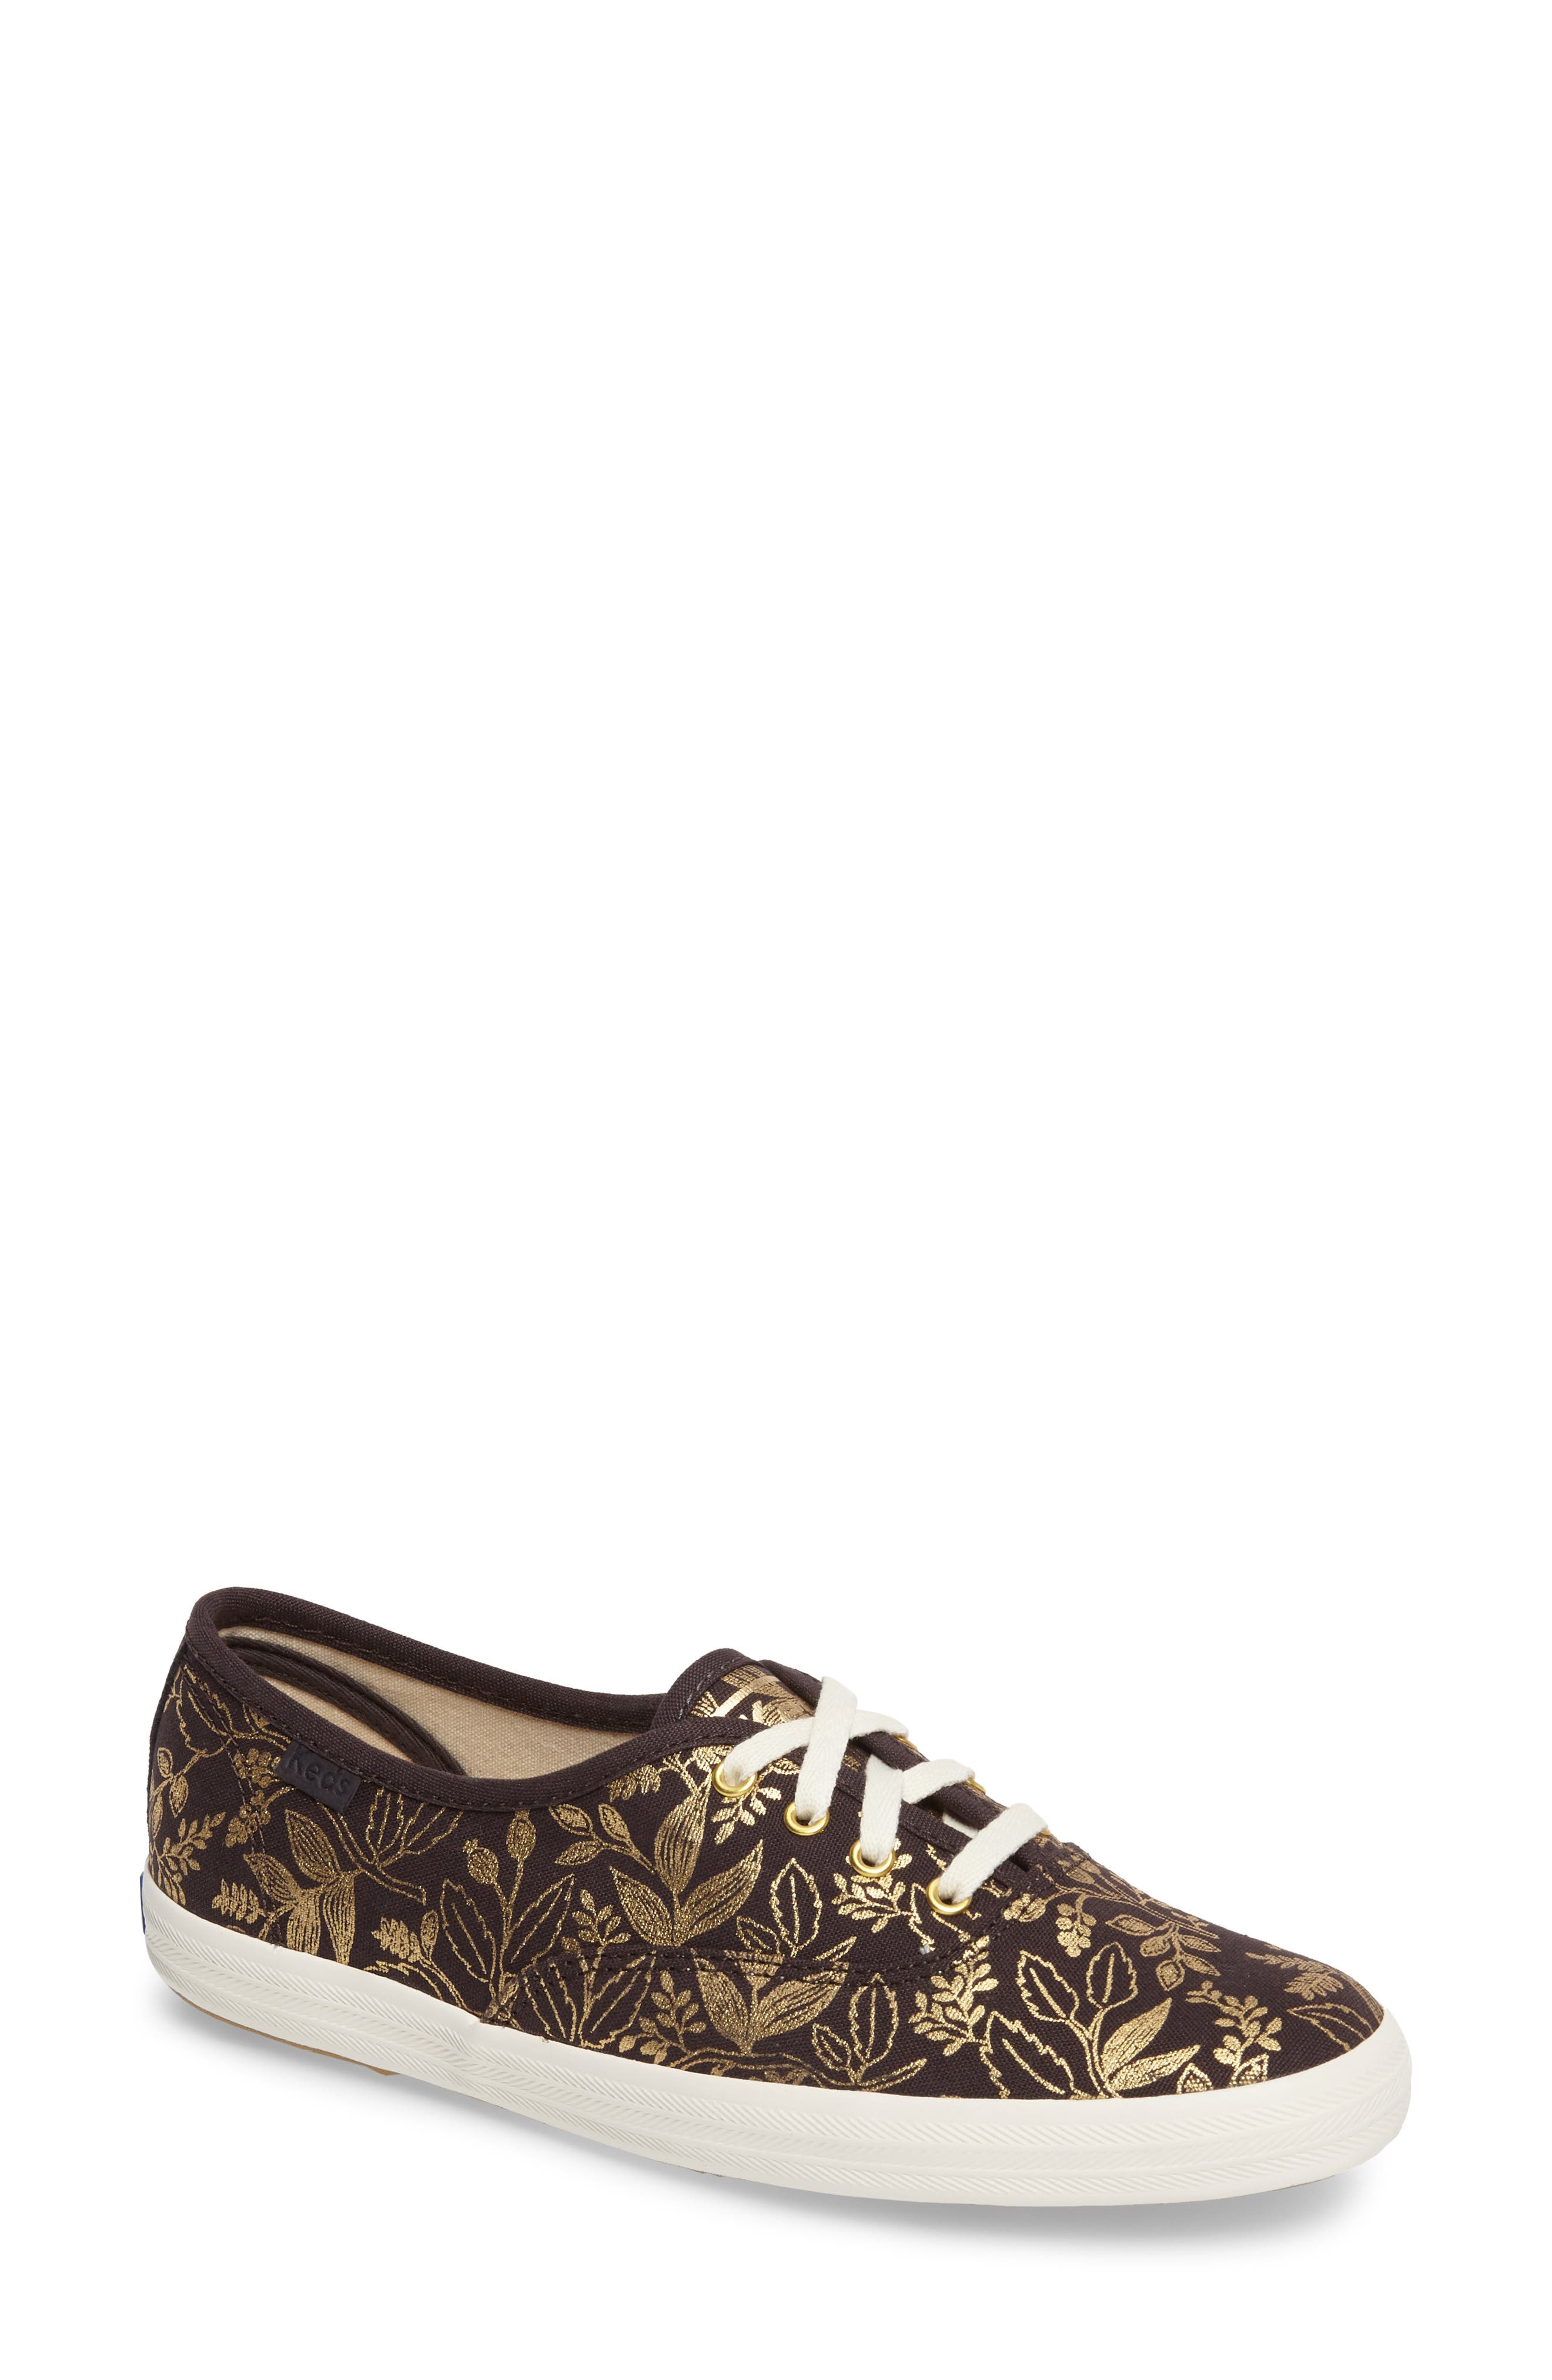 Main Image - Keds® x Rifle Paper Co. Queen Anne Sneaker (Women)